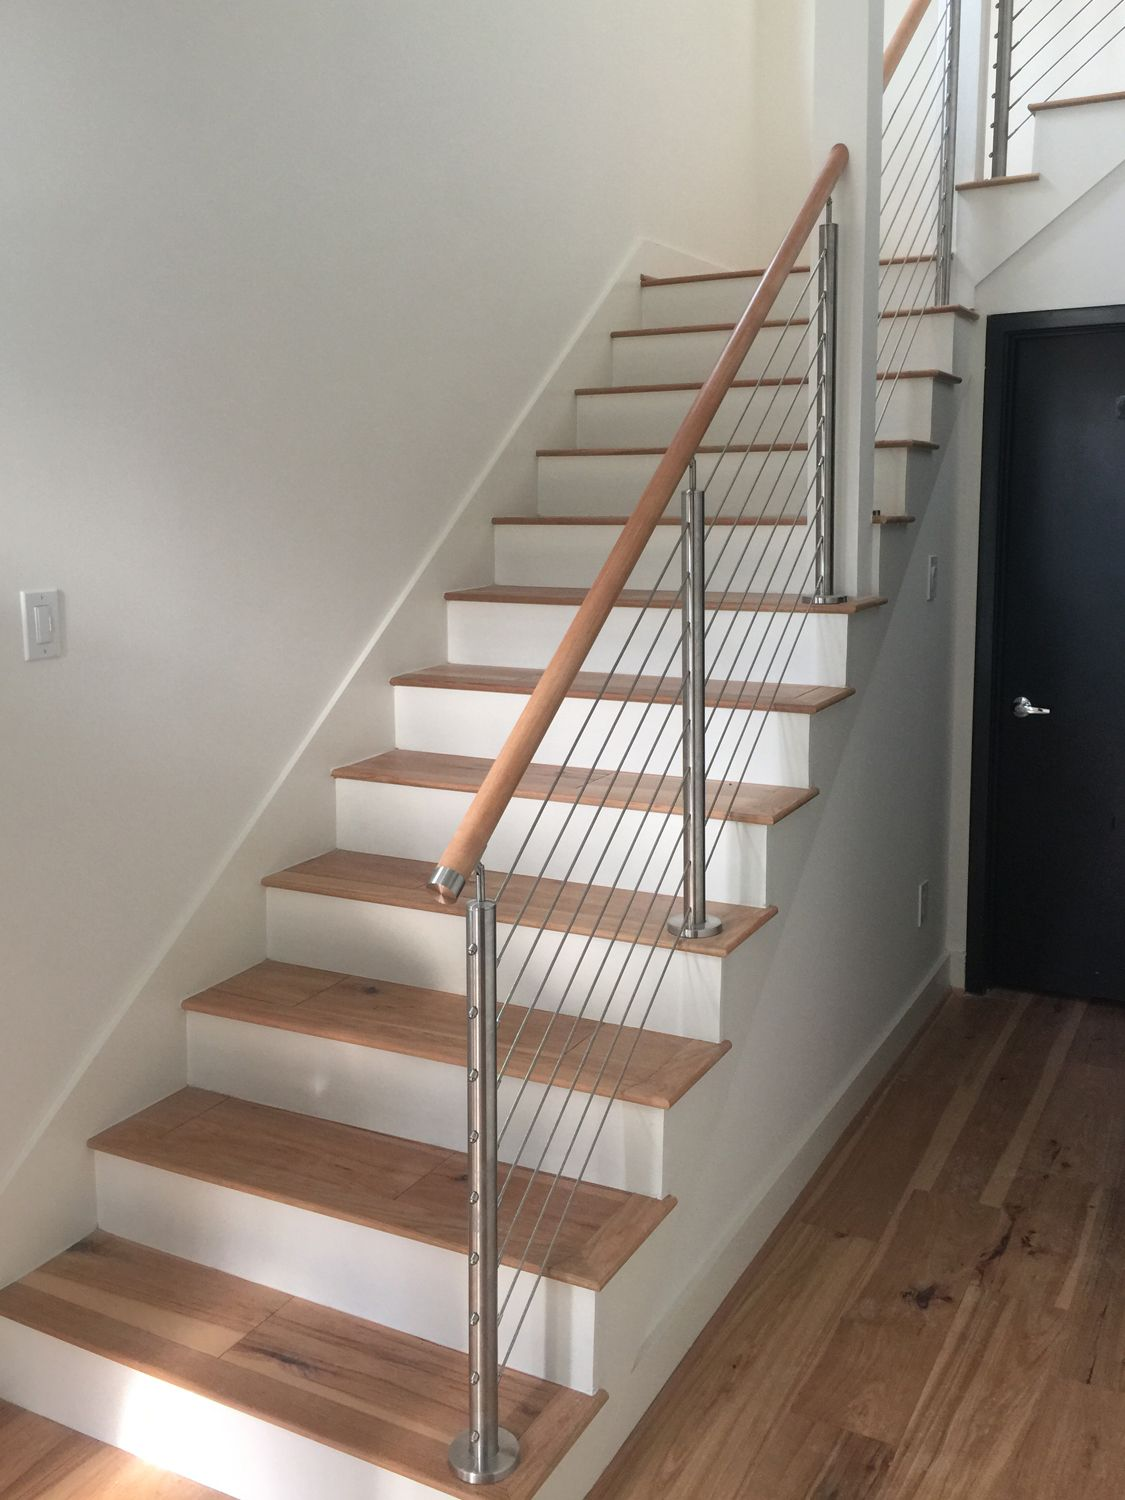 Our Stainlesssteel Wire Rope Railing With Wood Rail Makes A Modern Statement All Can Appreci Stairs Design Modern Stairs Design Interior Staircase Design